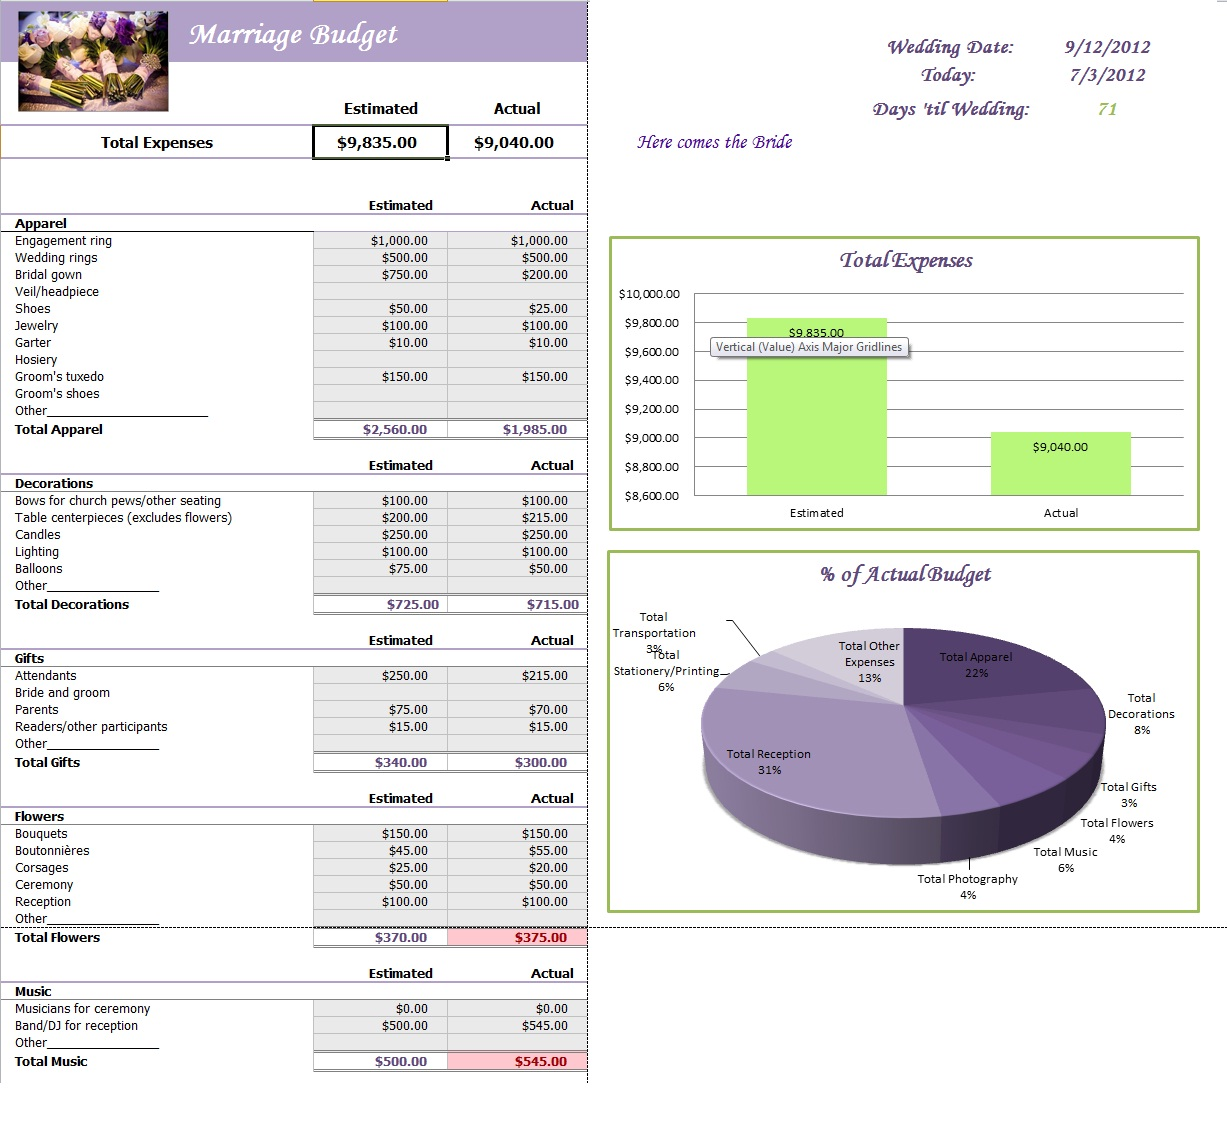 Marriage Budget Planner Template Sample